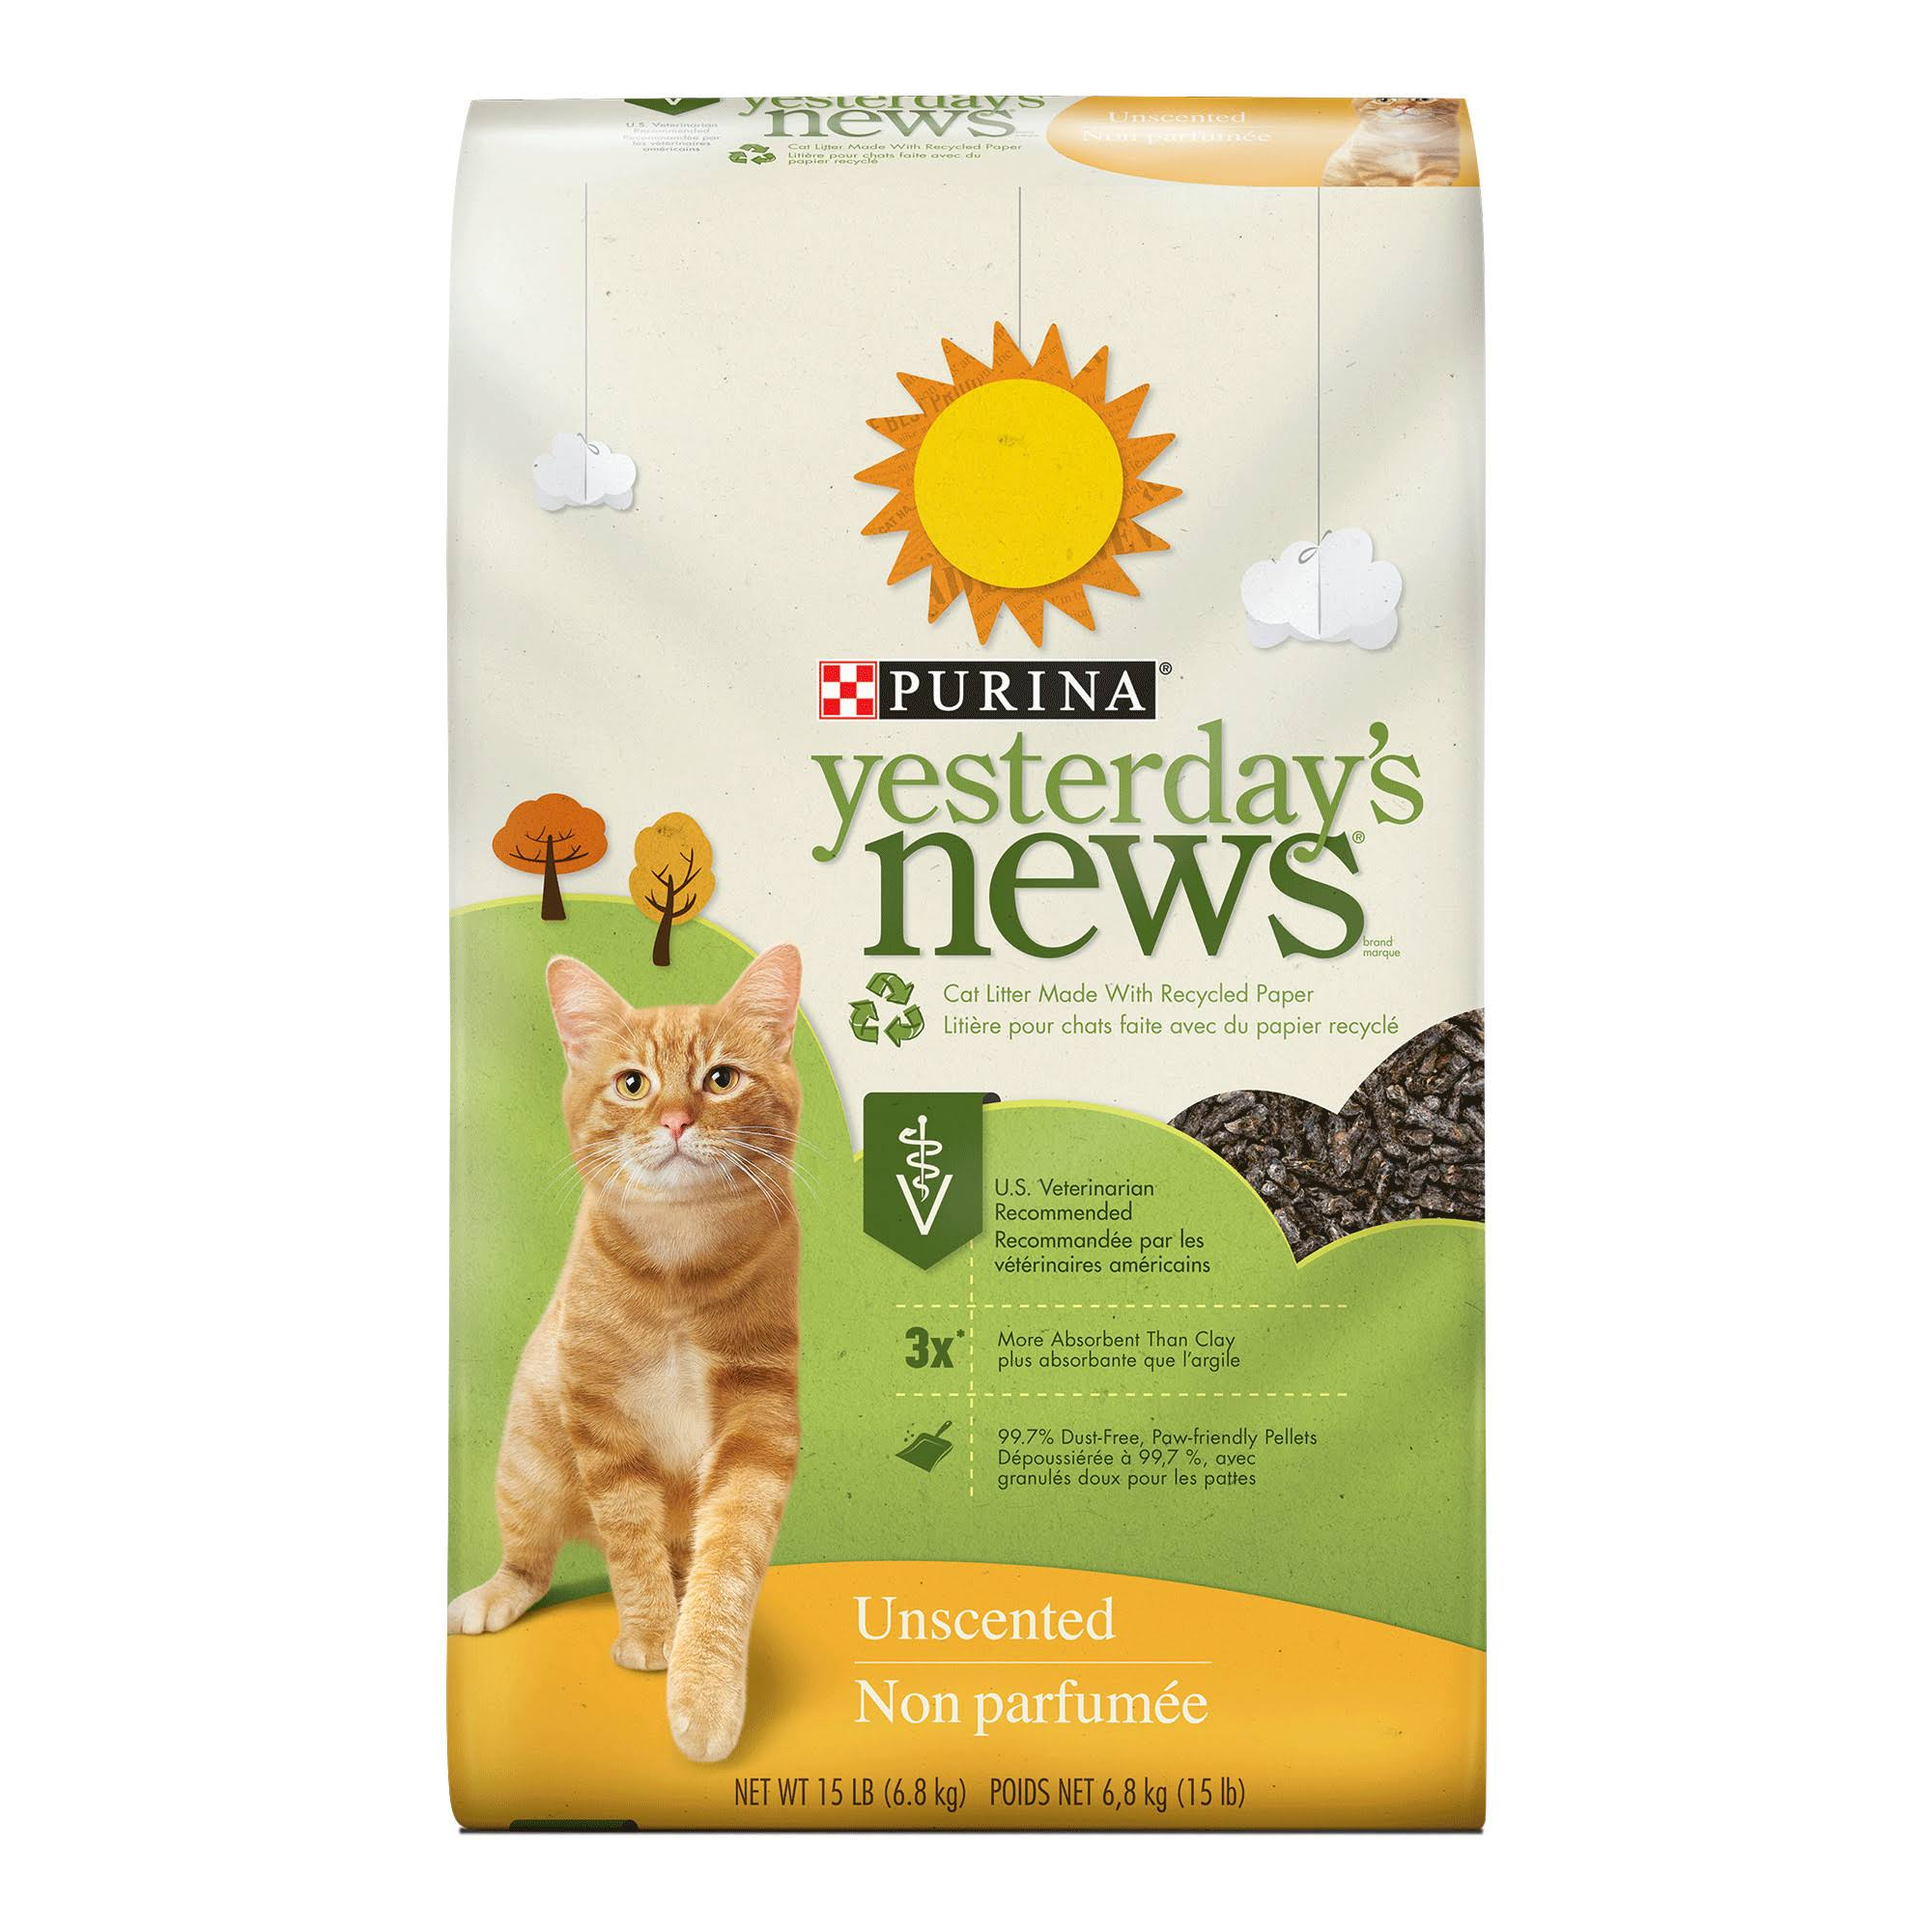 Purina Yesterday's News Cat Litter - Unscented, 15lbs